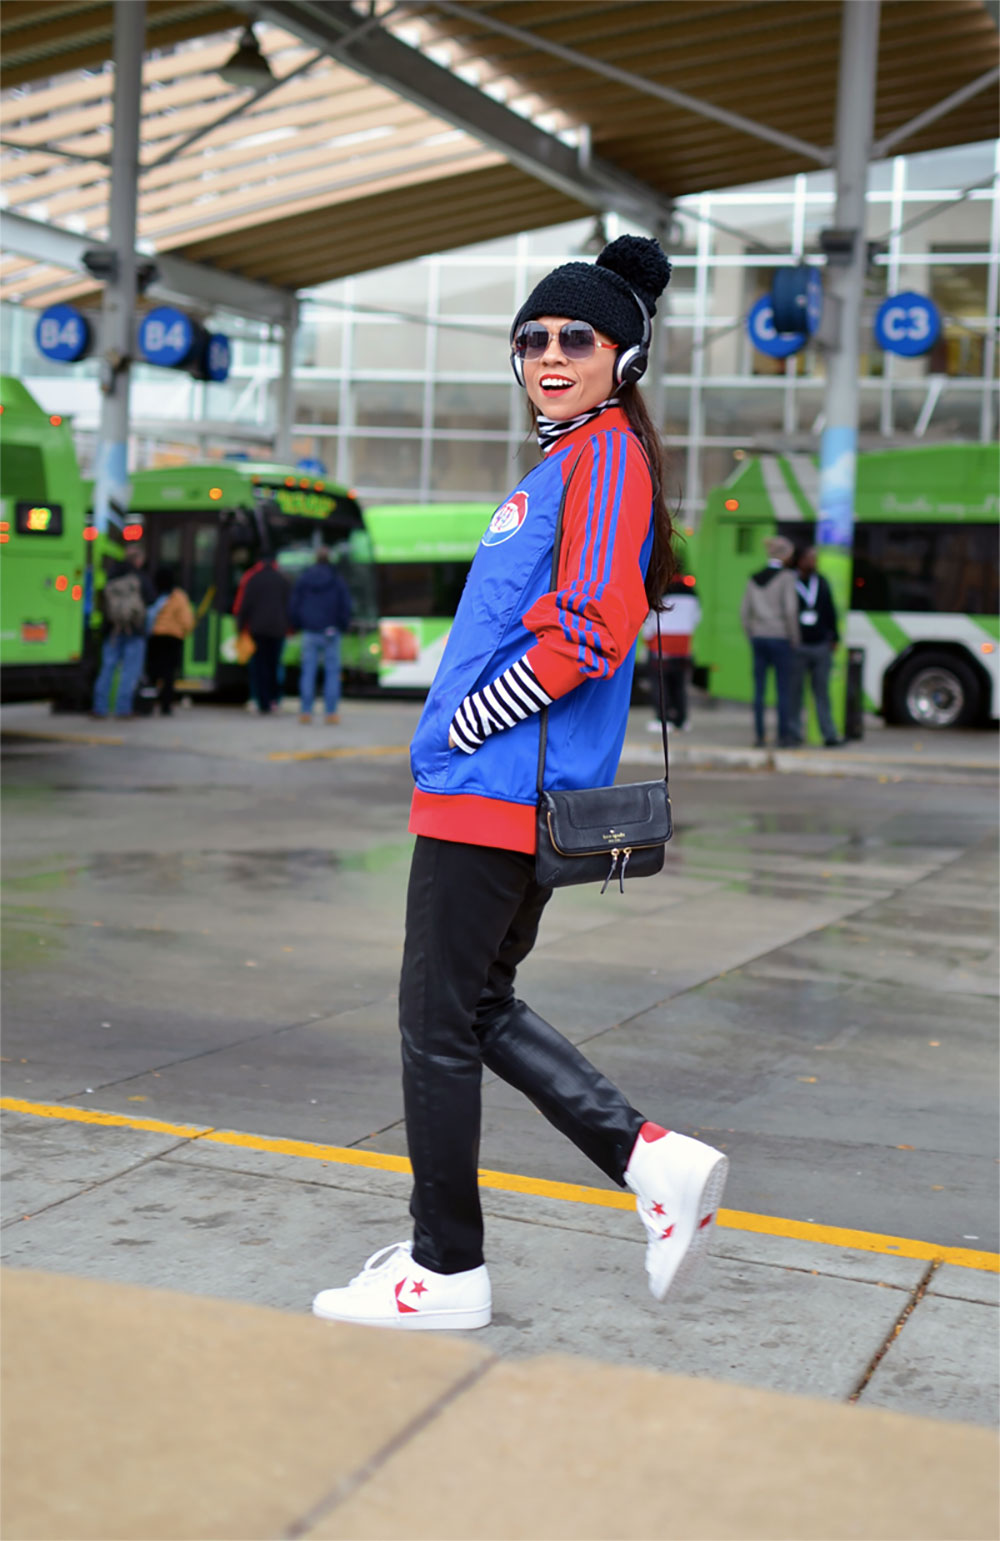 sneakers sport jacket outfit